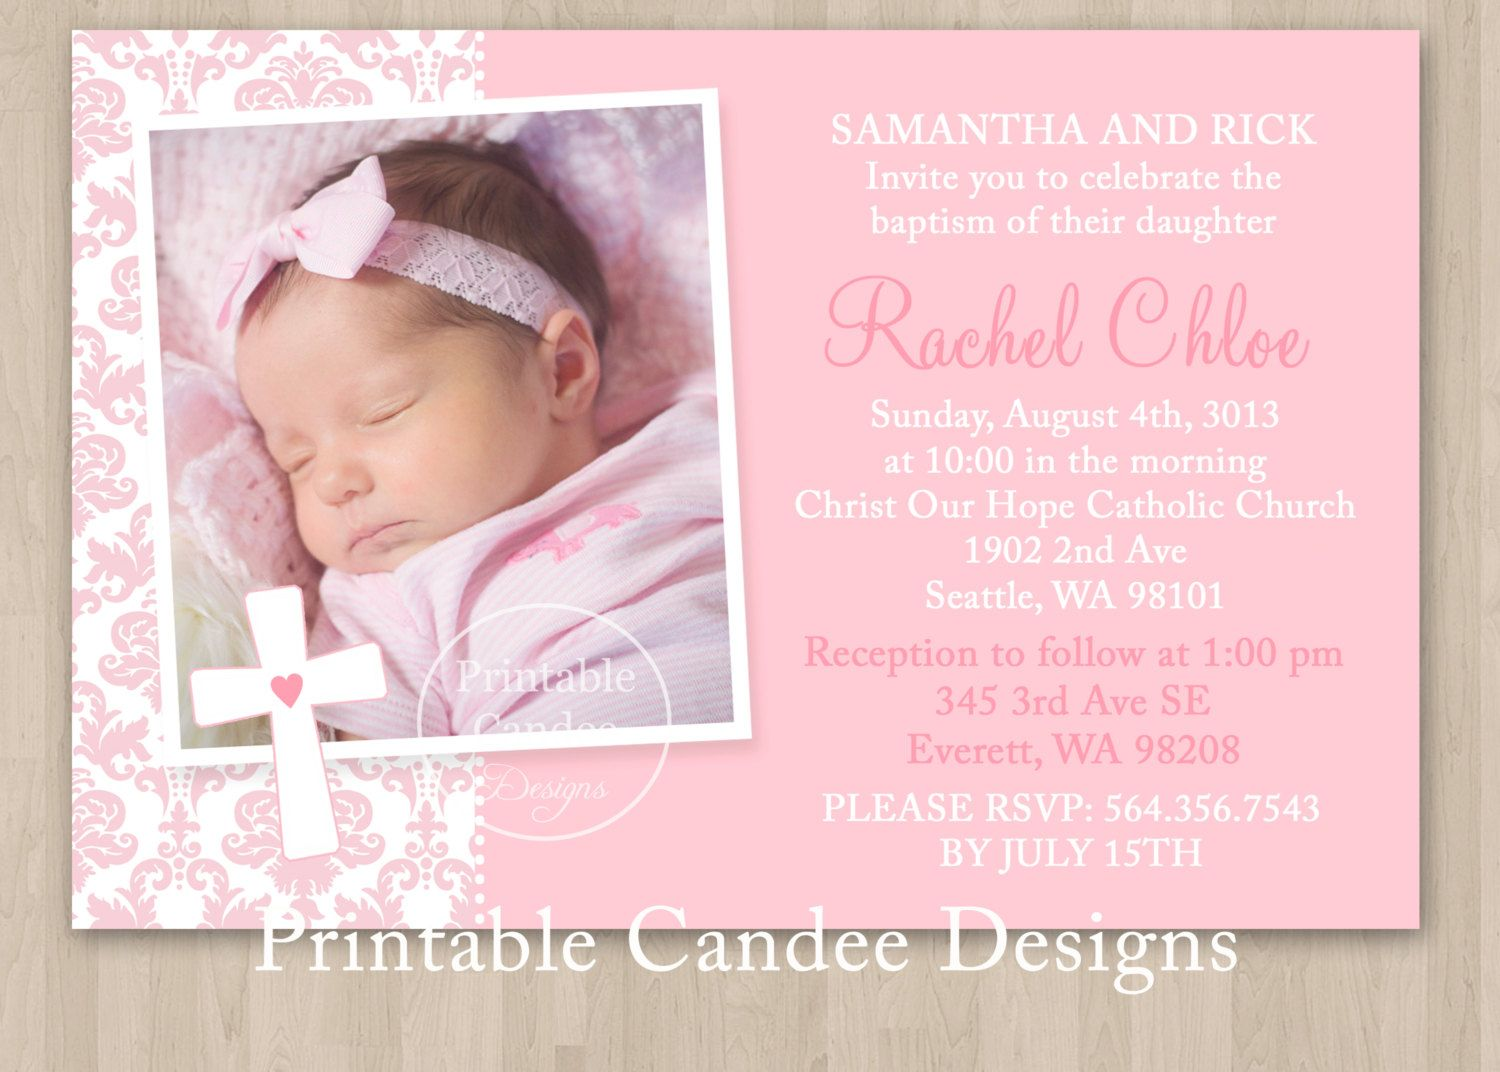 Christening invitation templates free printable juve christening invitation templates free printable altavistaventures Gallery